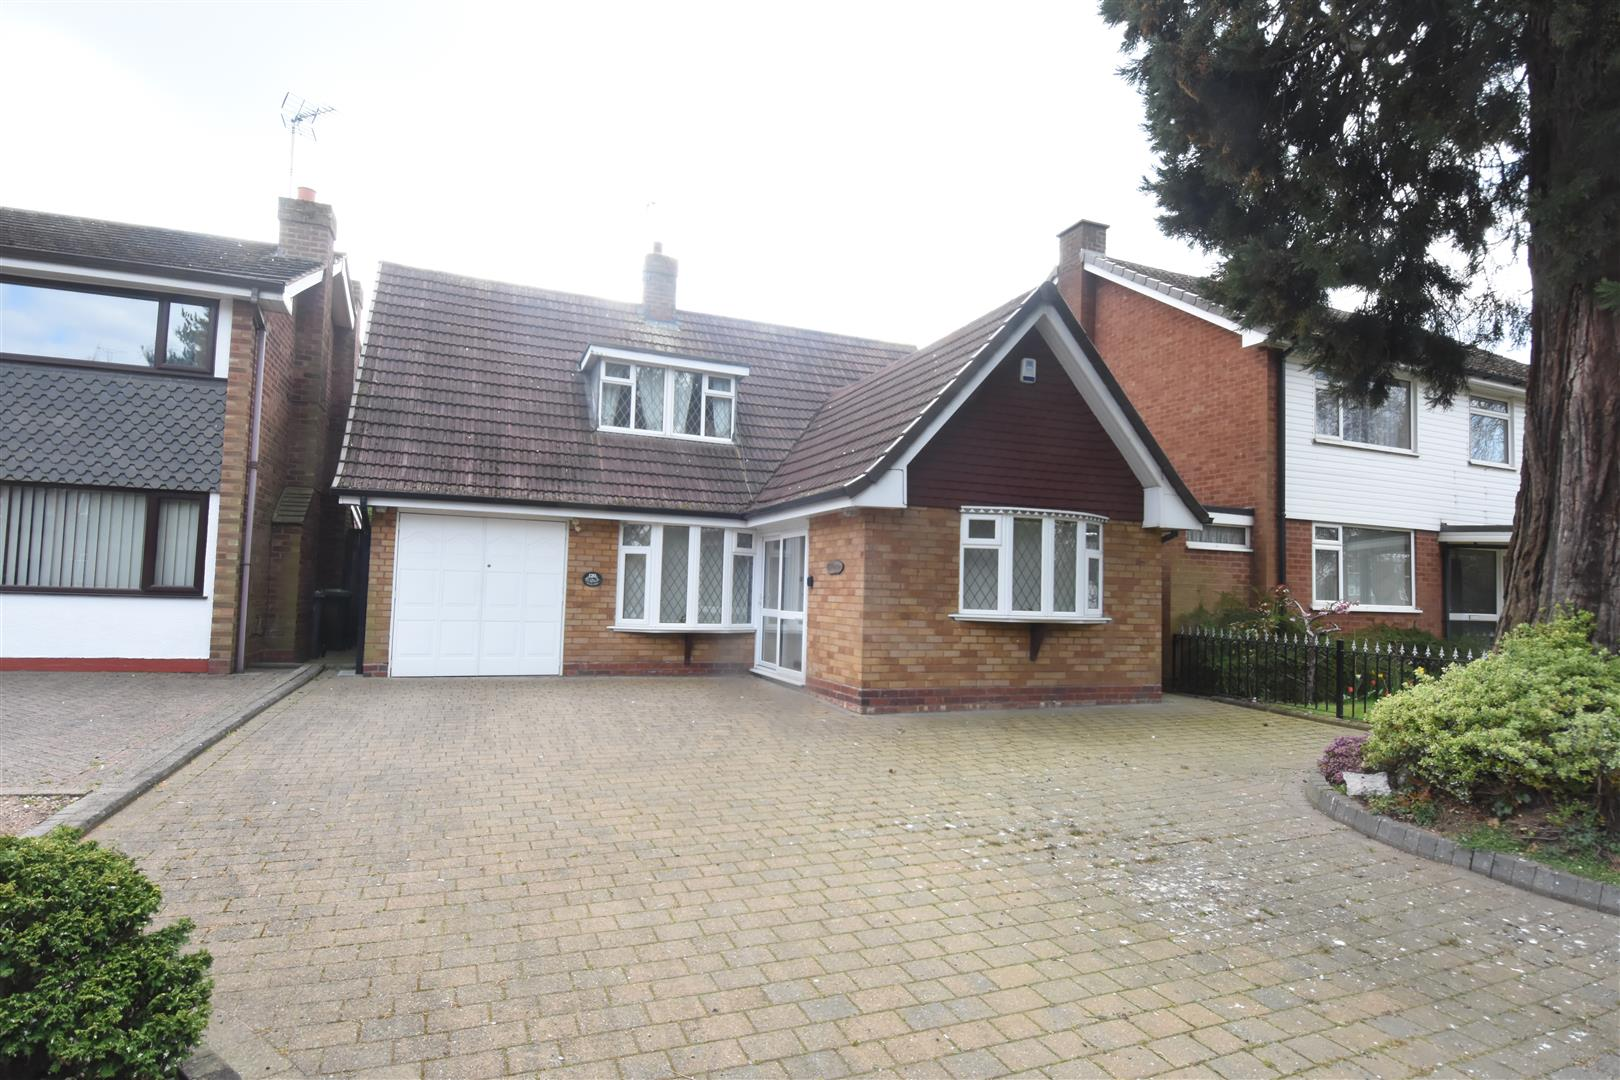 3 bed  for sale in Chester Road, Castle Bromwich, Birmingham, B36